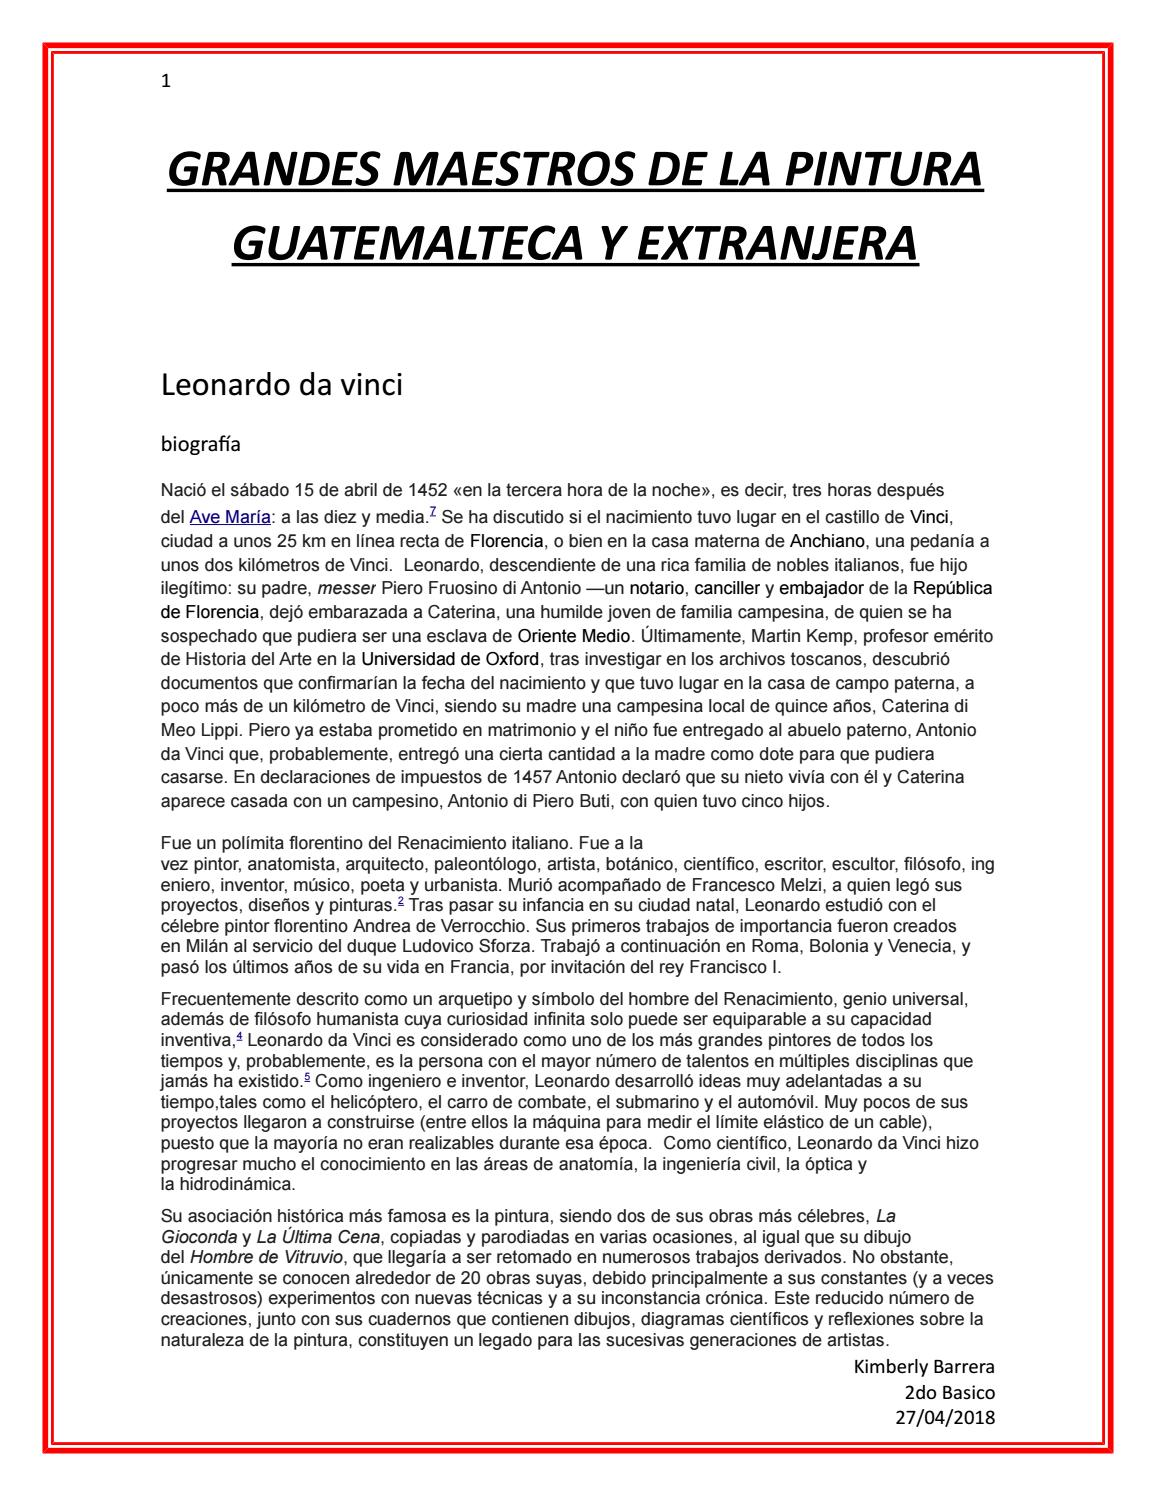 Grandes pintores de Guatemala by kimberly Barrera - issuu